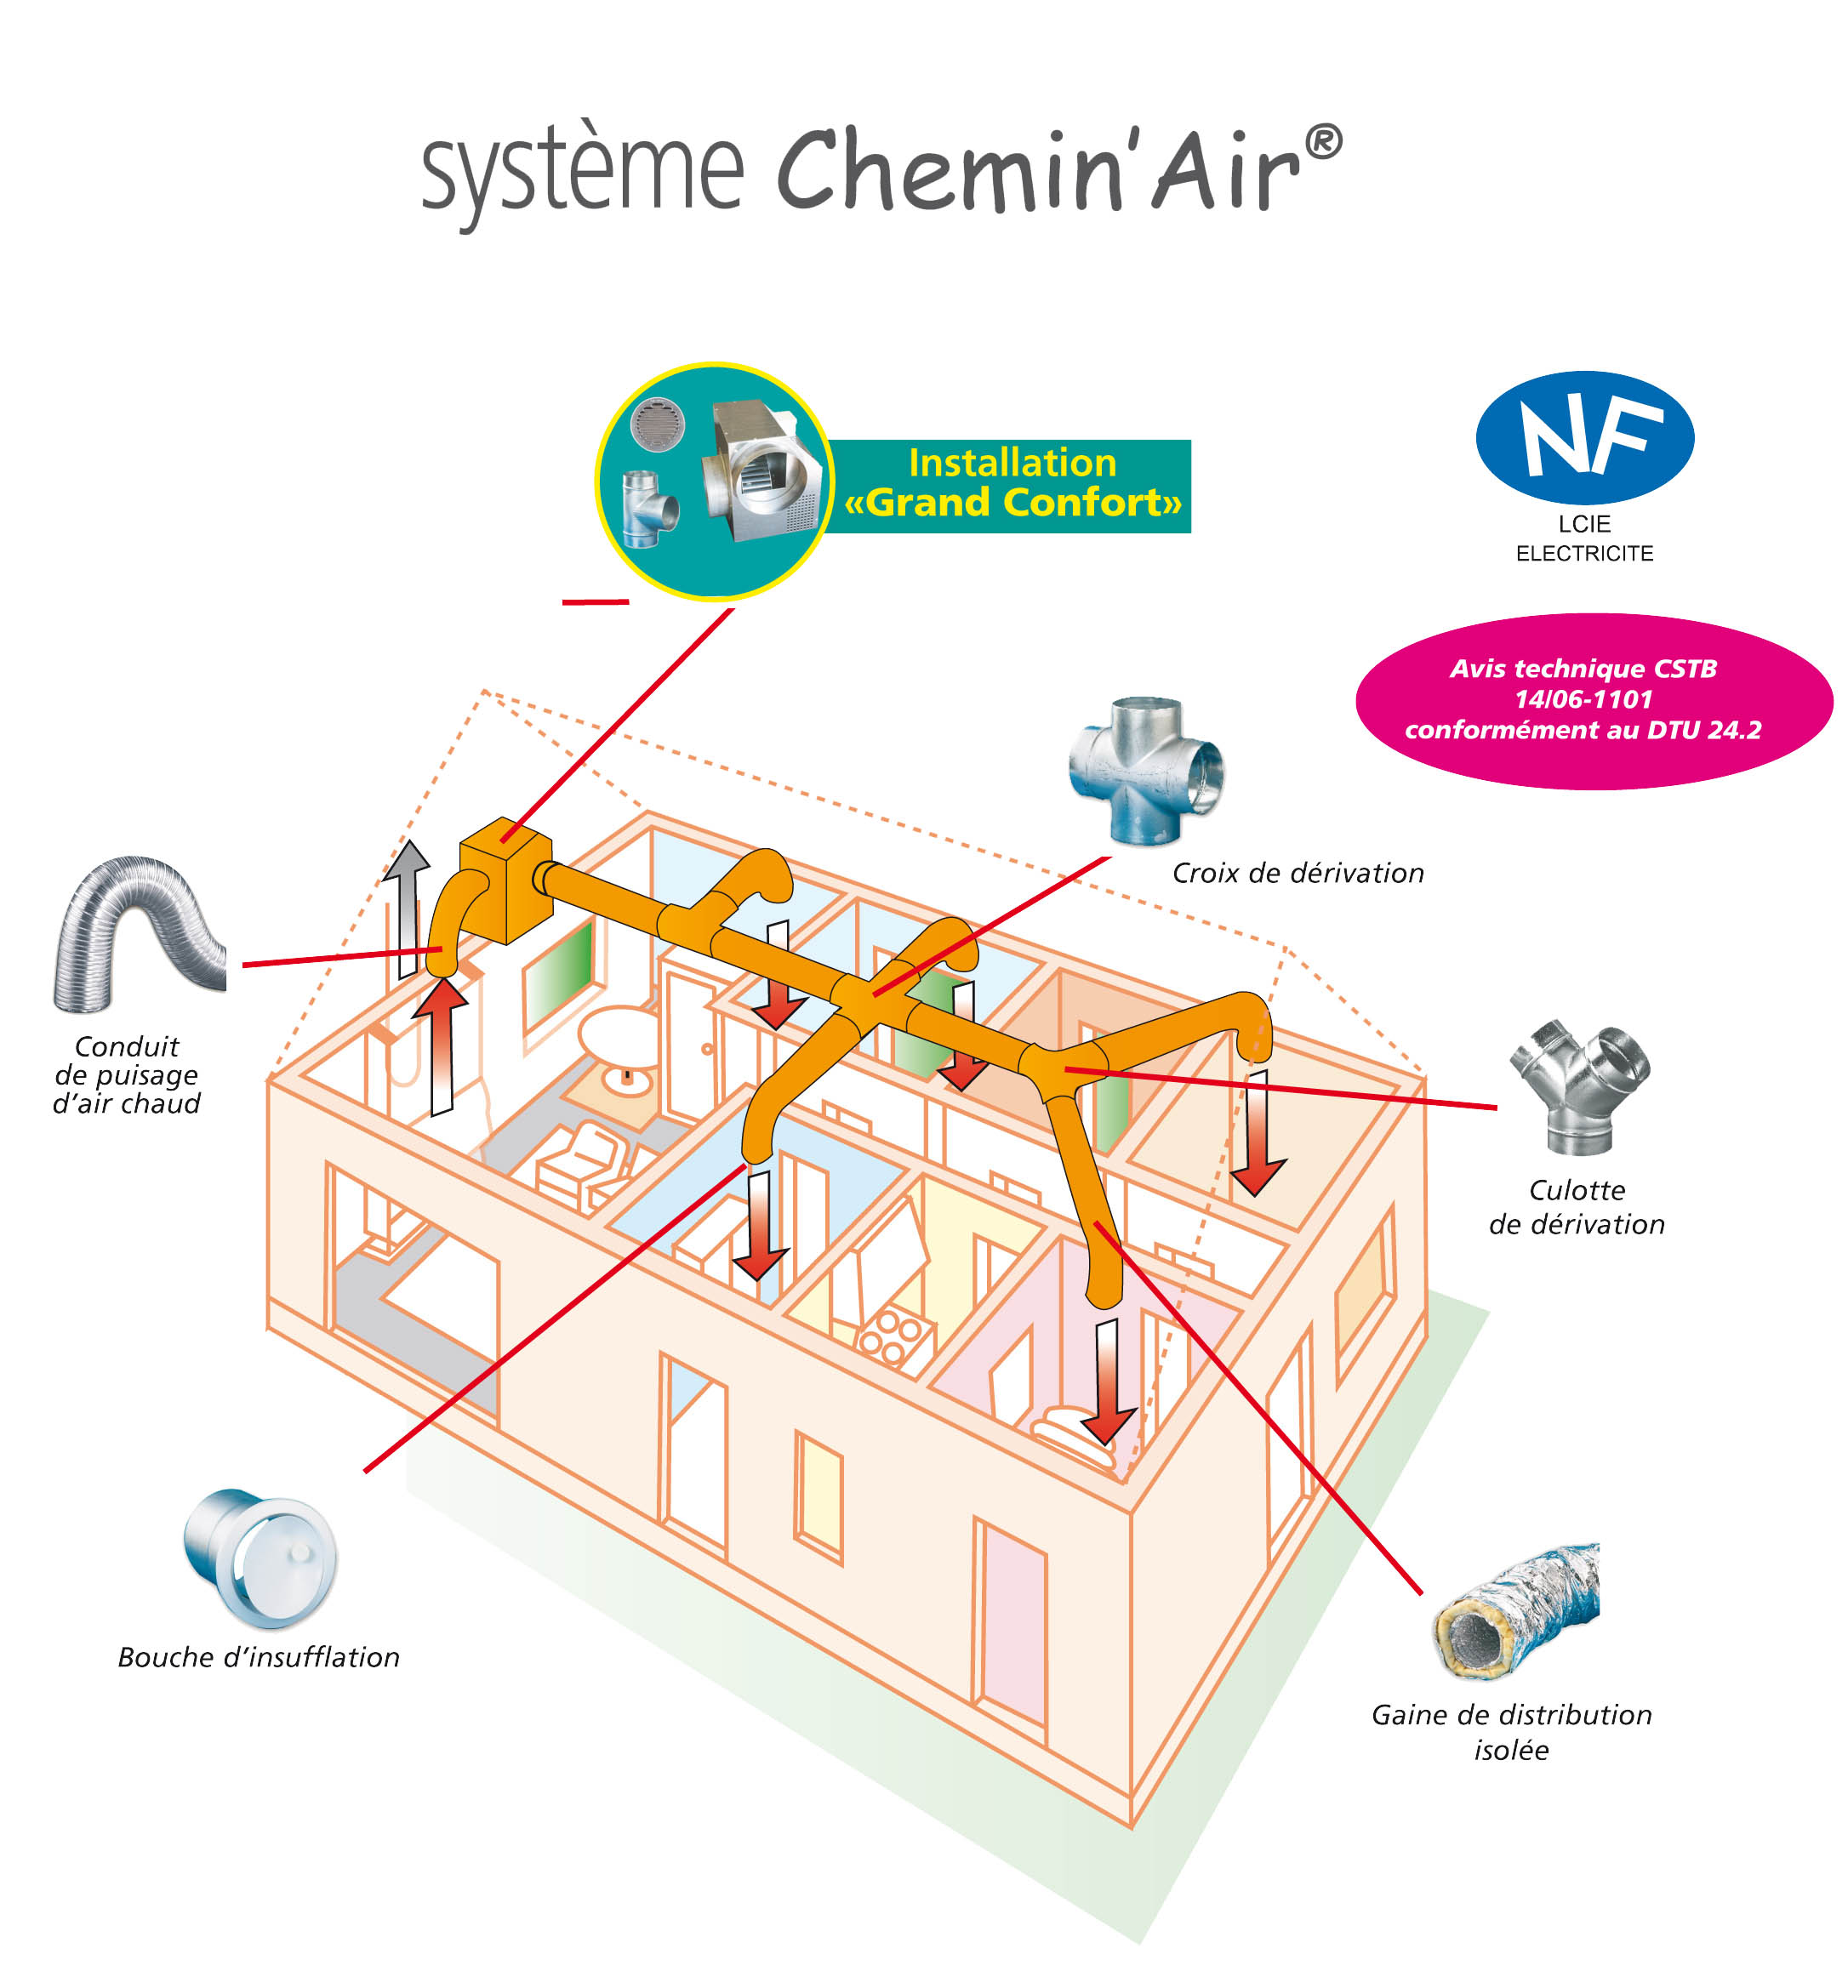 Autogyre chemin air grand confort distribution d air for Caisson de distribution d air chaud